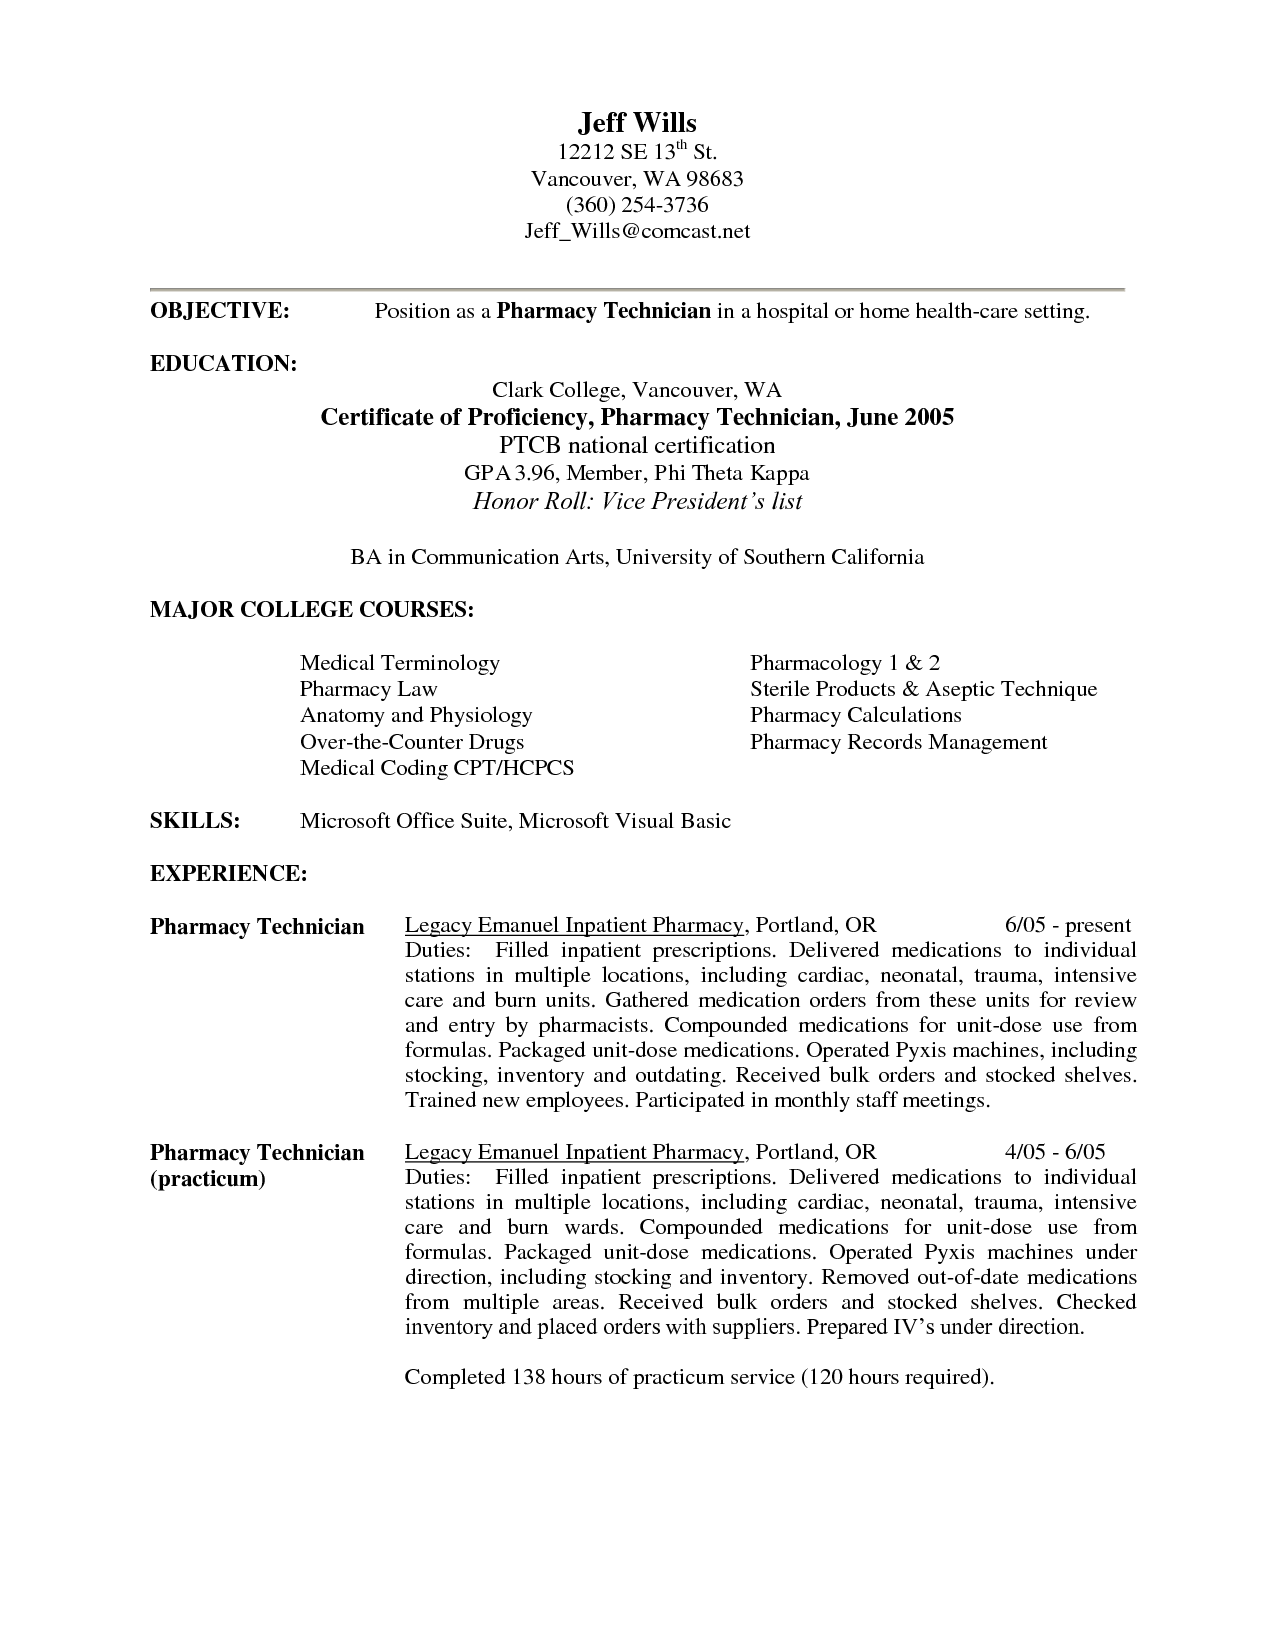 Pharmacy technician objective resume samples cpht pinterest pharmacy technician cover letter pharmacy technician cover letter sample in 21 mesmerizing examples madrichimfo Choice Image